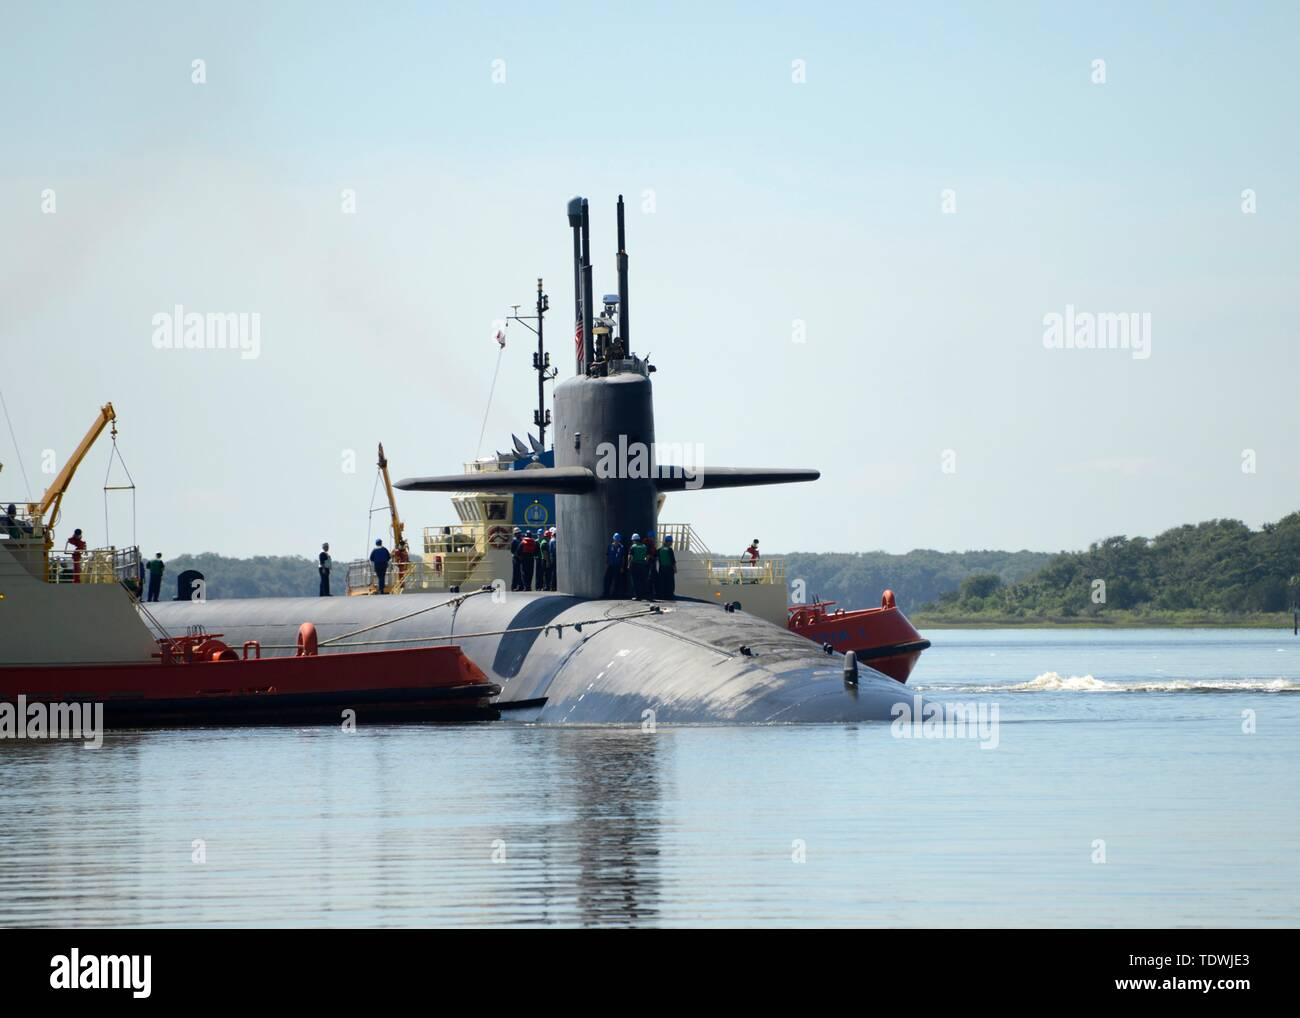 Kings Bay, United States. 18th June, 2019. The U.S. Navy Ohio-class ballistic-missile submarine USS Rhode Island returns to homeport at Naval Submarine Base Kings Bay March 18, 2019 in Kings Bay Georgia. Credit: Planetpix/Alamy Live News - Stock Image